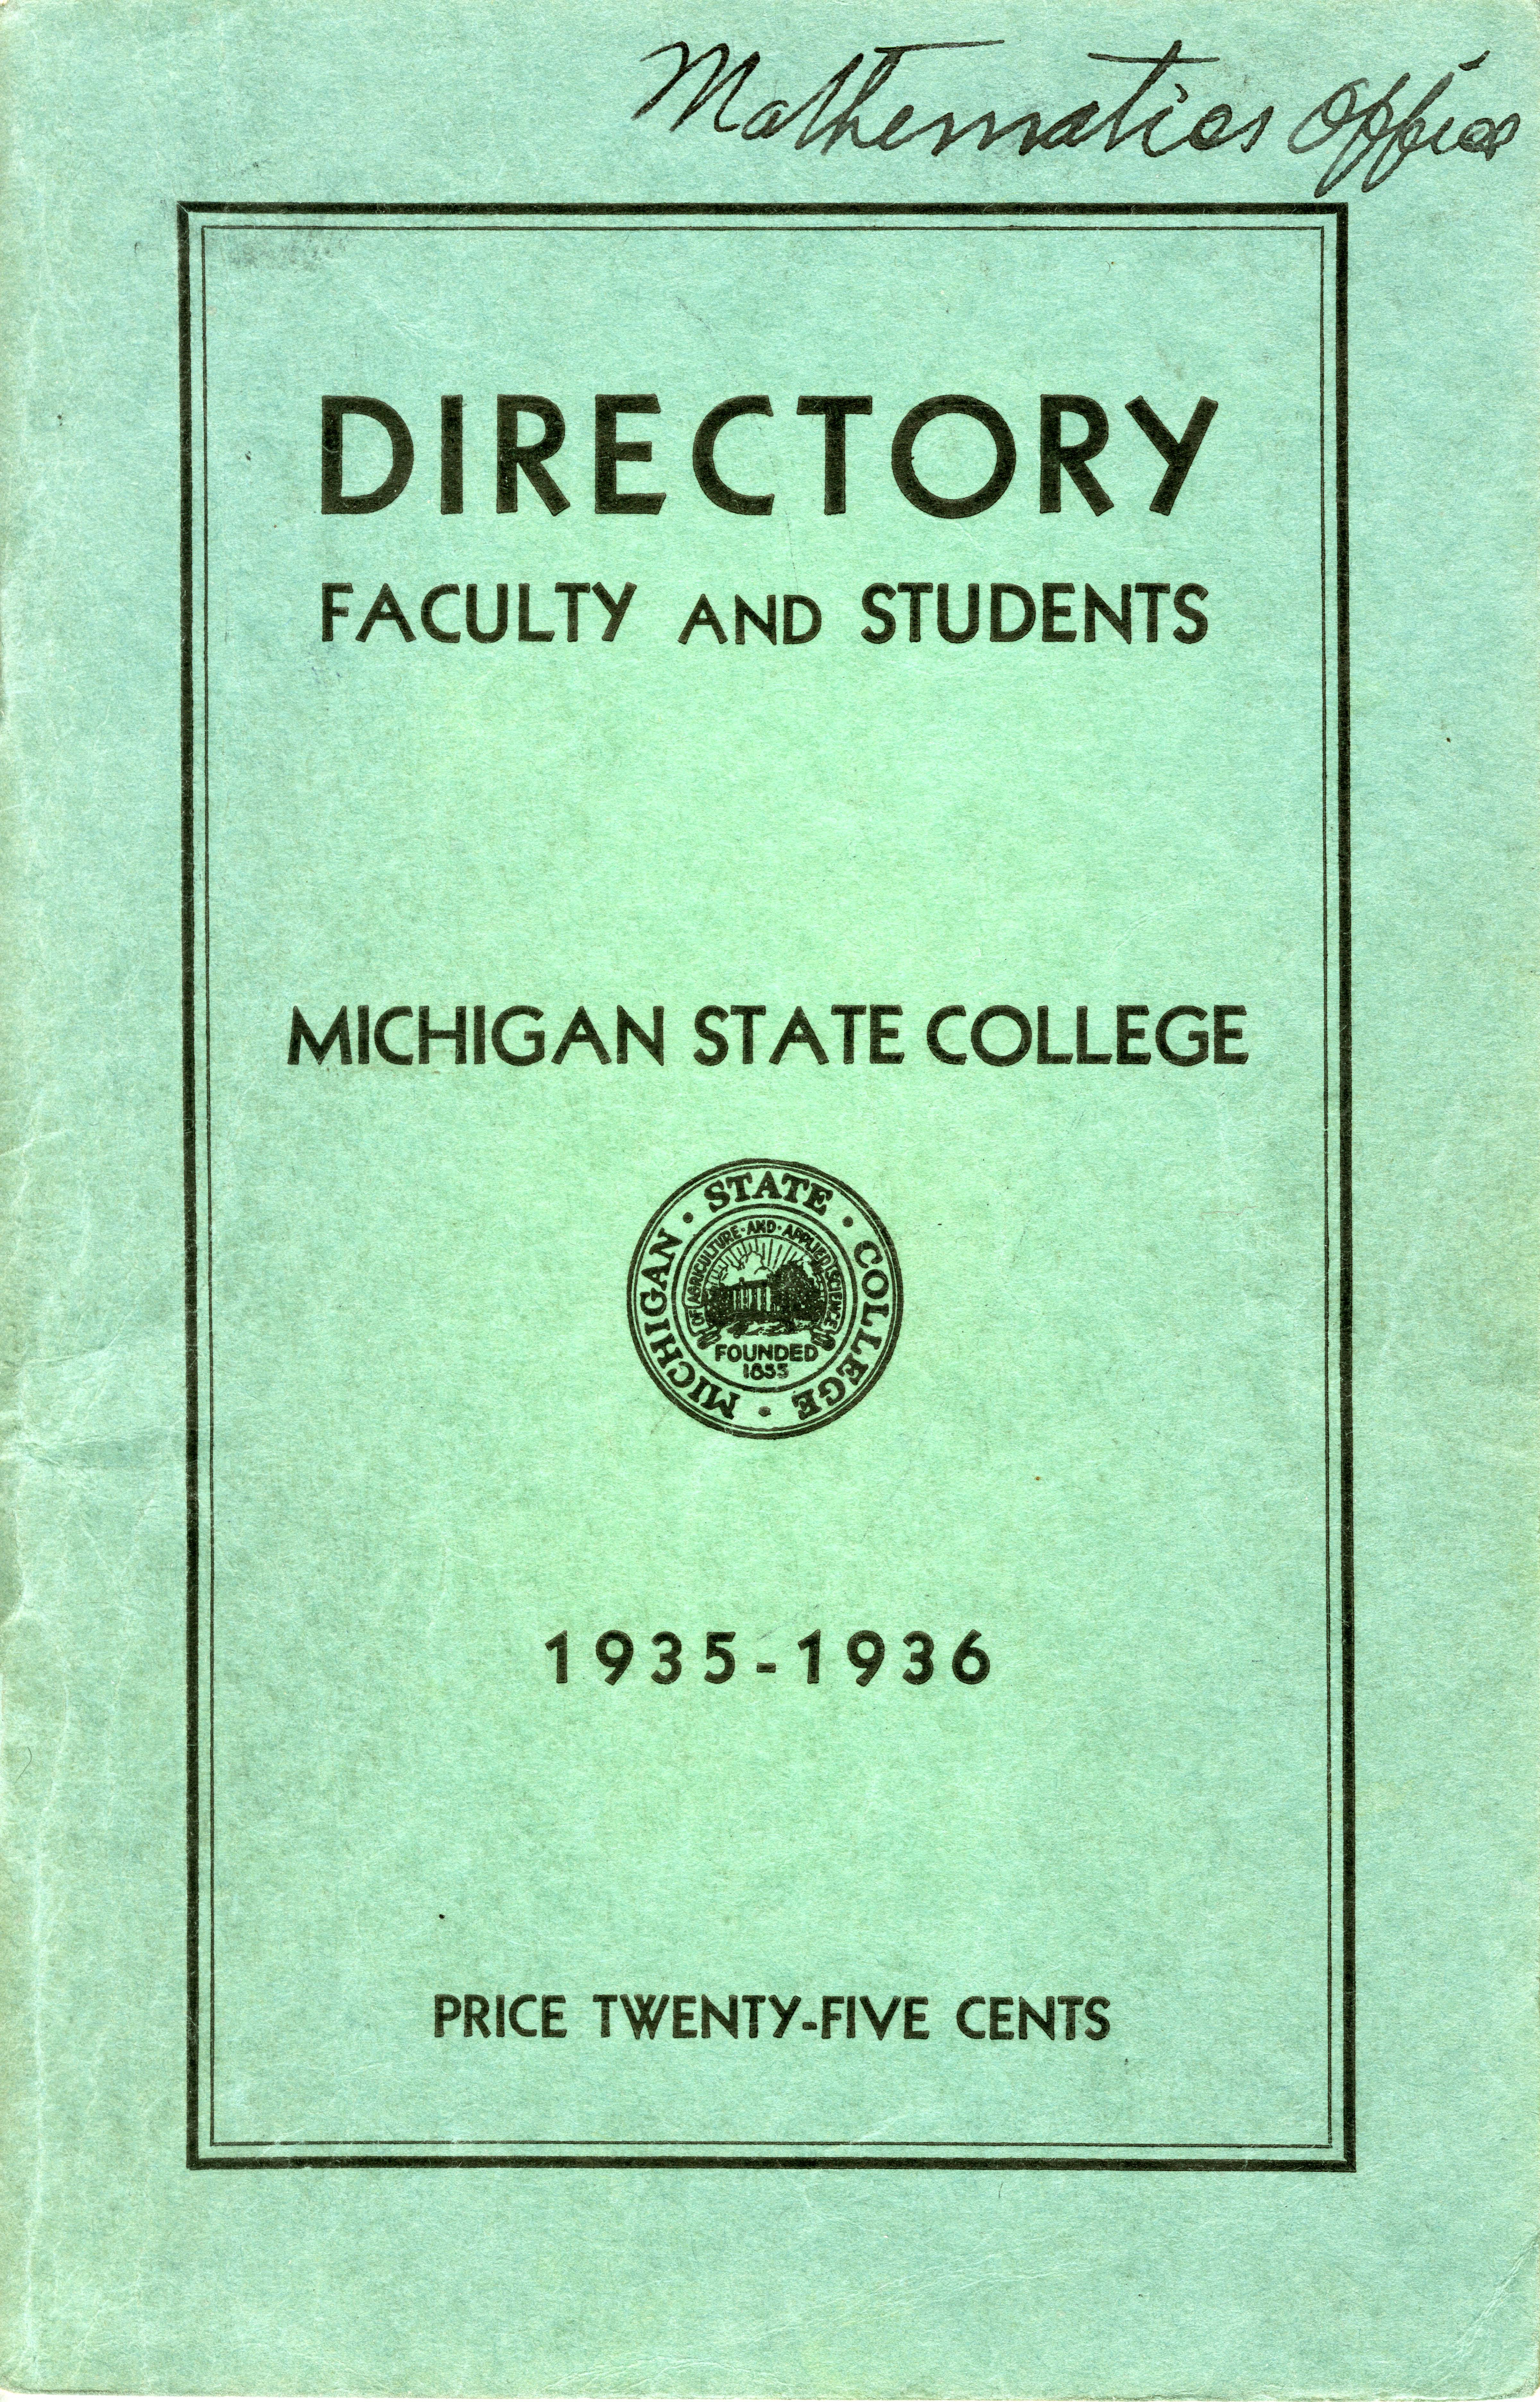 1935-1936 Michigan State College Faculty and Student Directory